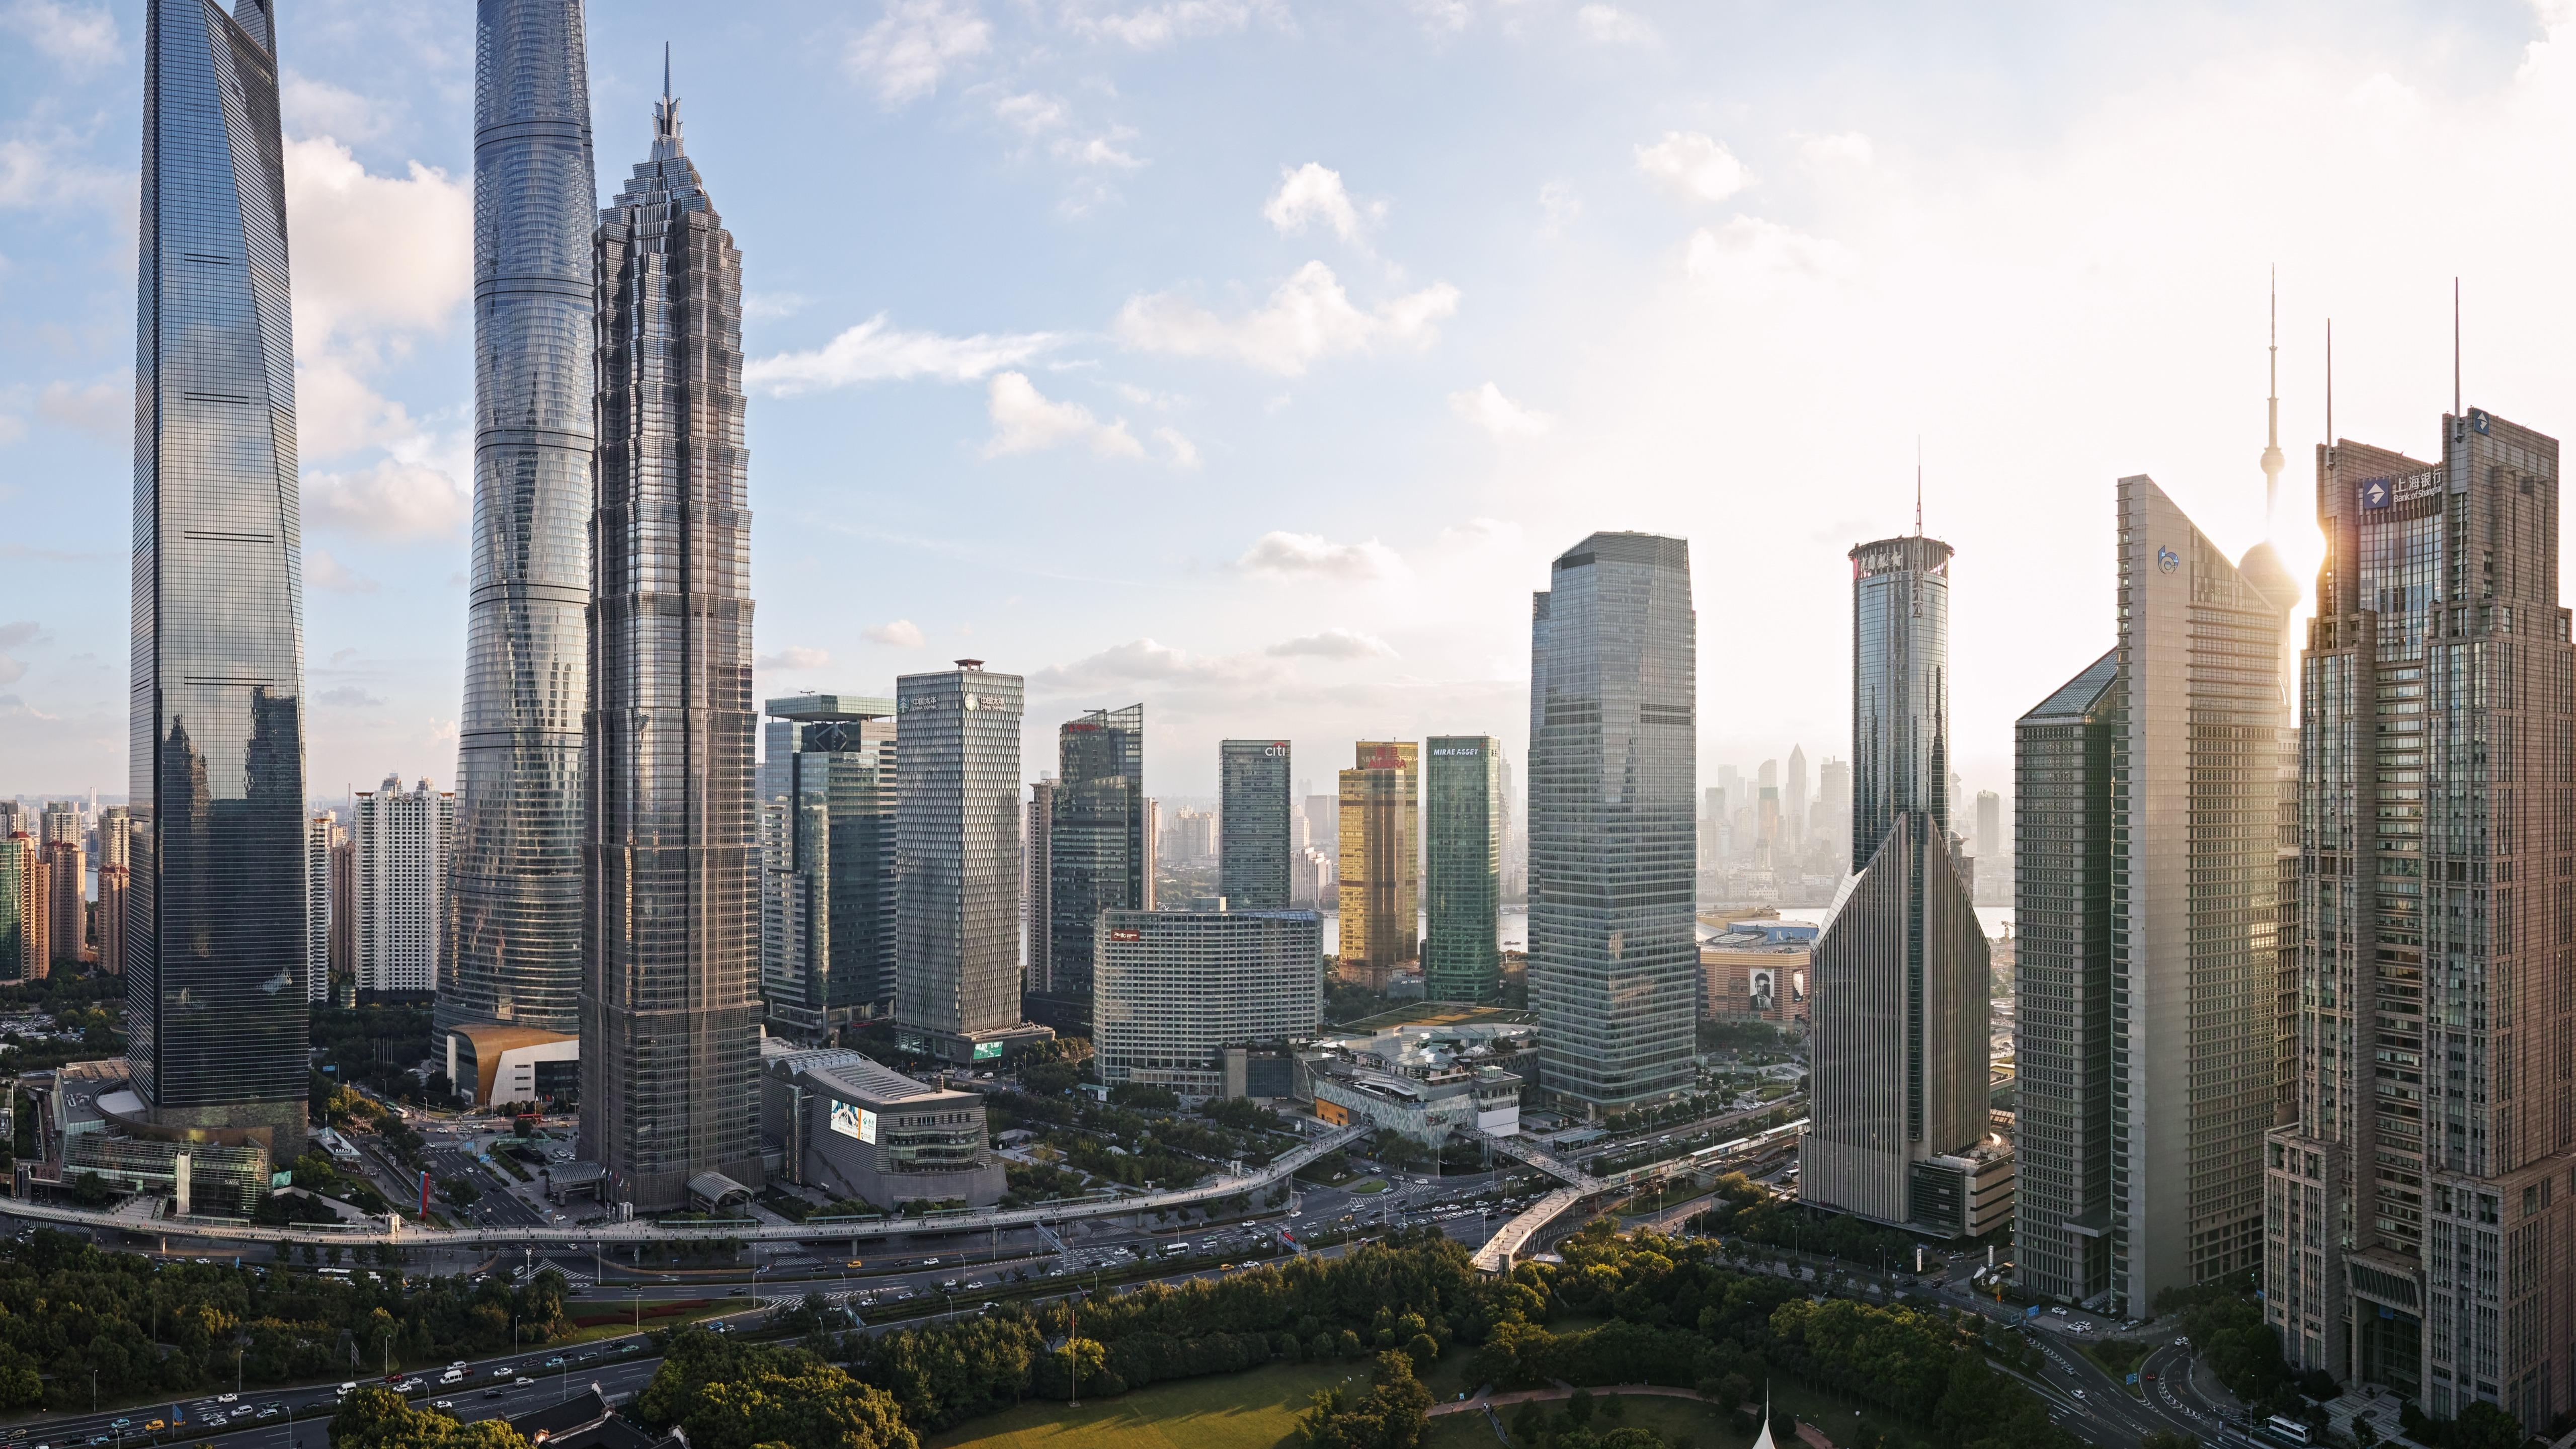 Business District of Shanghai wallpaper